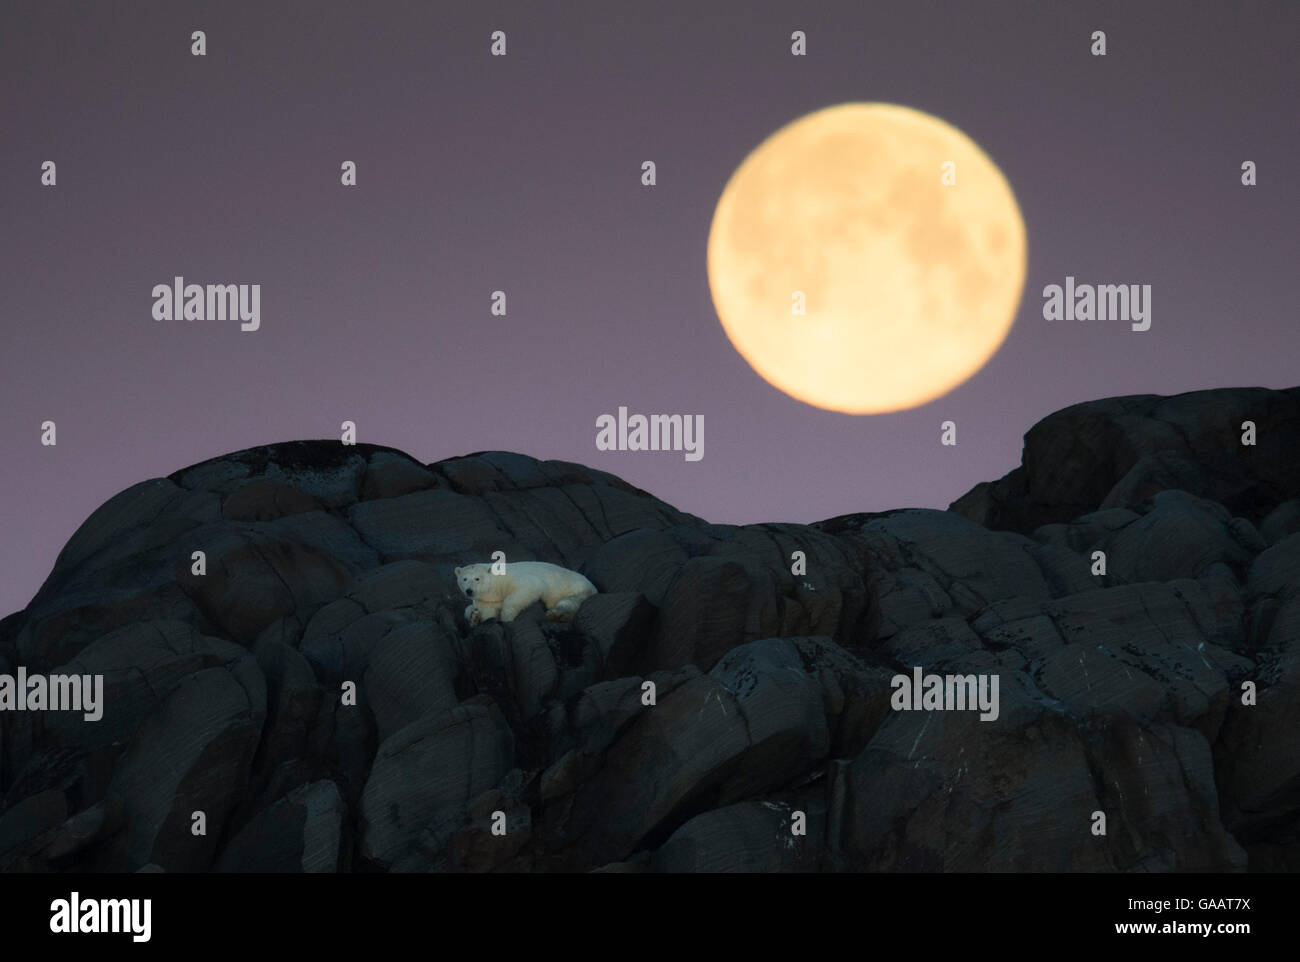 Polar bear (Ursus maritimus) stranded on island, with full moon above, north of Nordaustlandet, Svalbard, Norway, - Stock Image